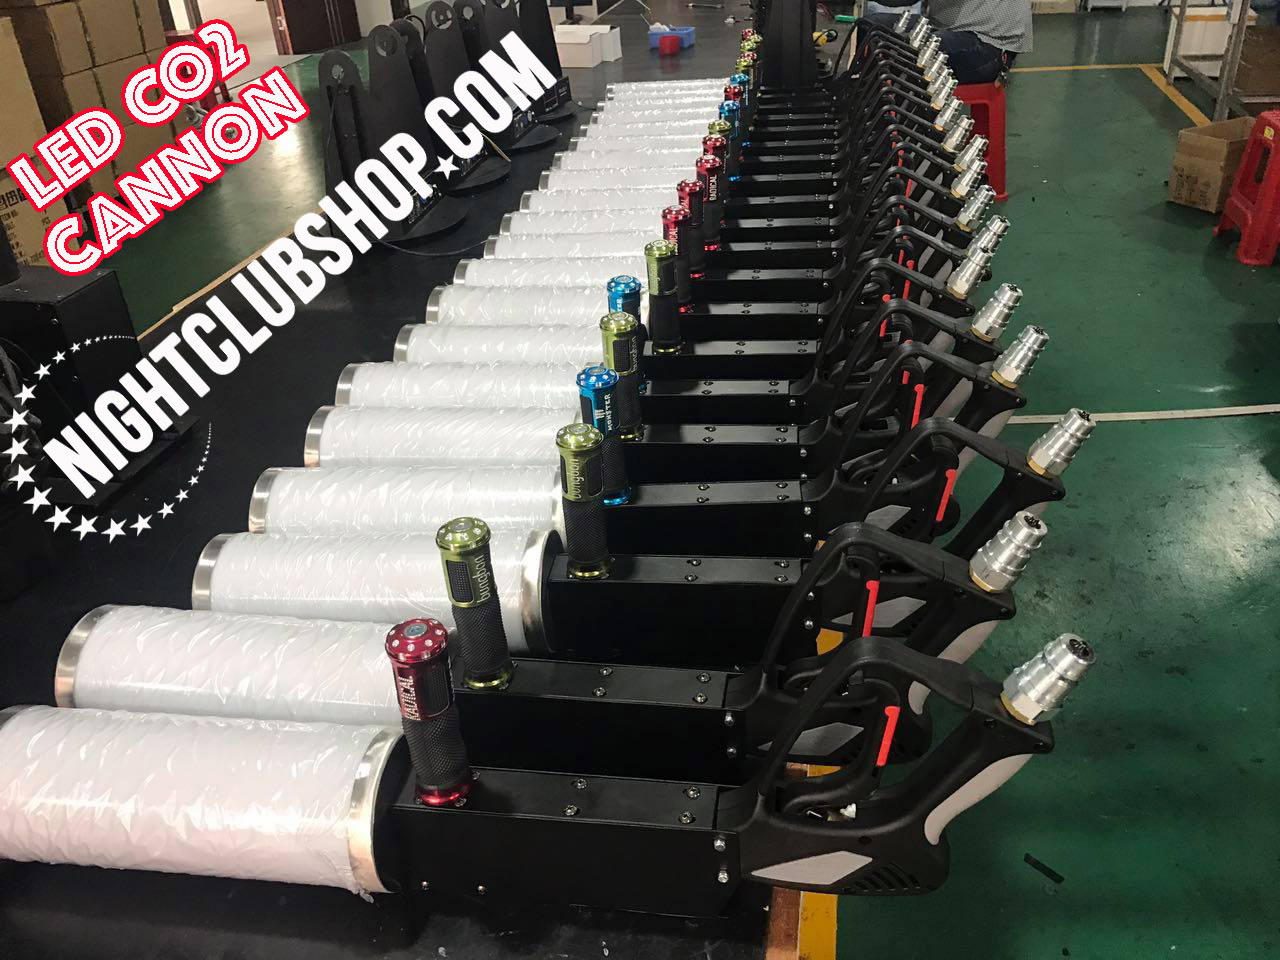 SFX, bulk,Wholesale, LED, Cryo, CO2, Cannon, gun, Party, Blaster